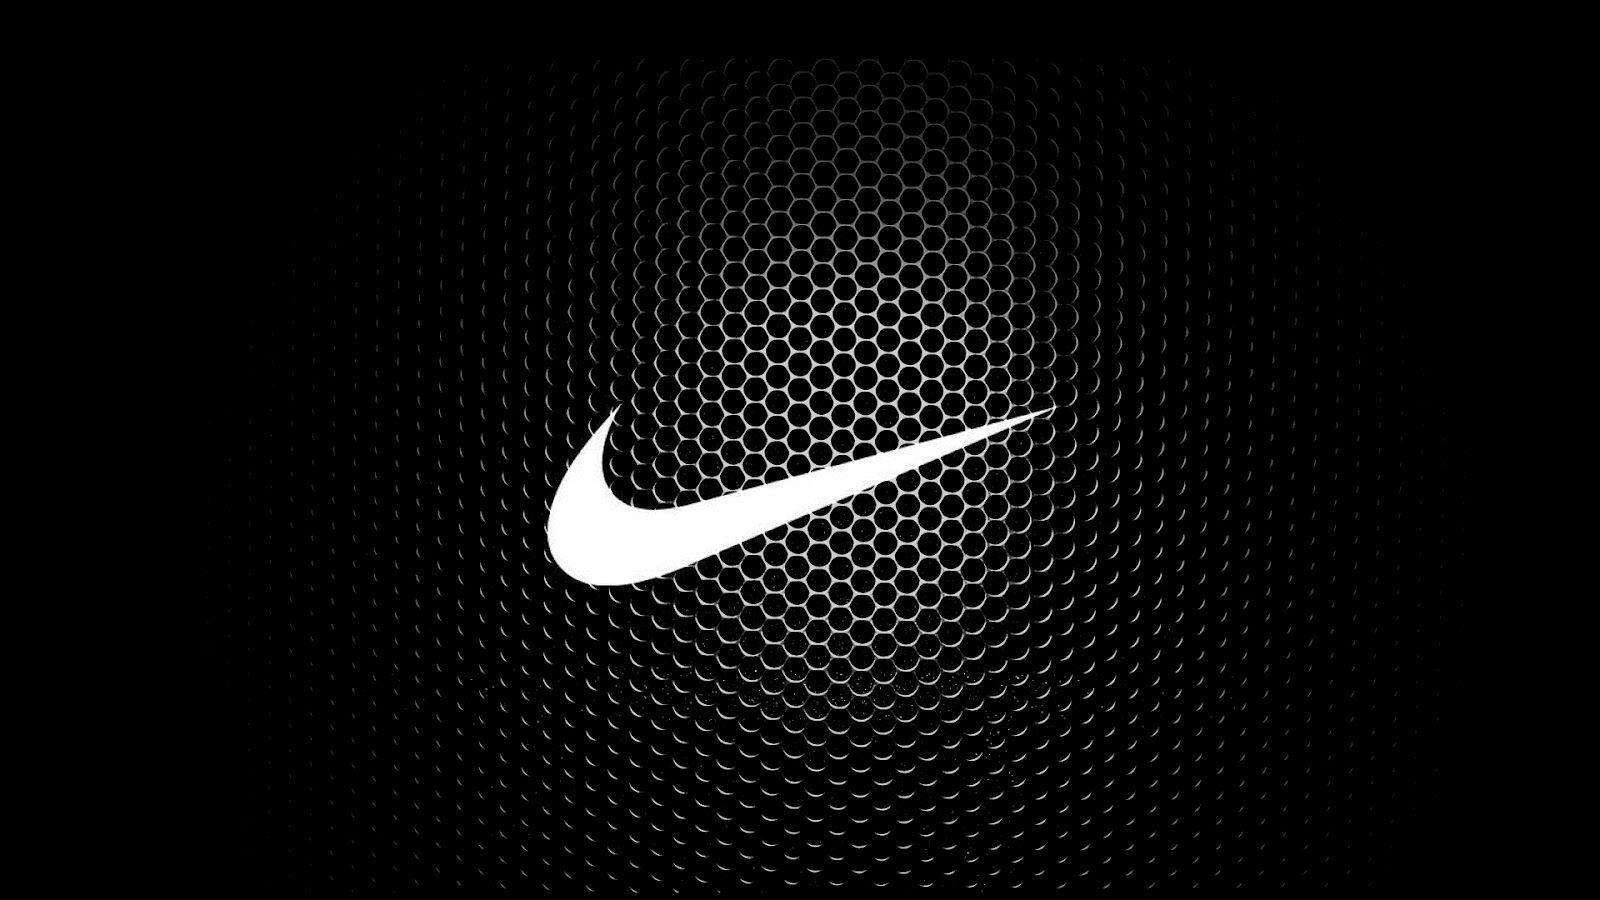 Free Nike Wallpaper Backgrounds